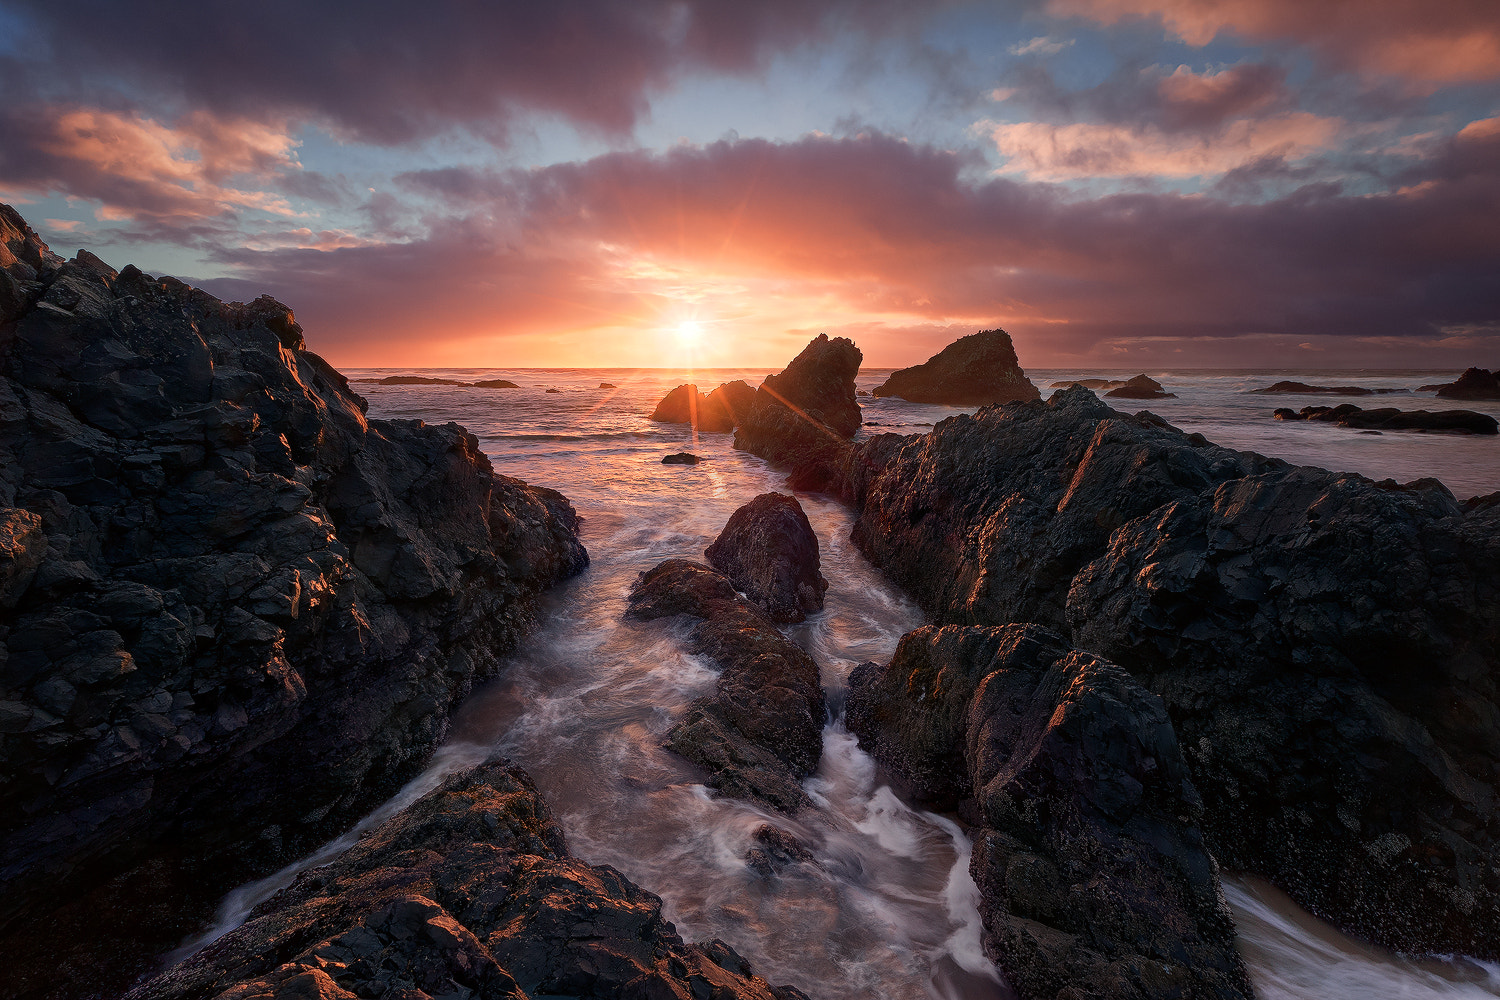 Photograph Ode To A Sunstar by Miles Morgan on 500px